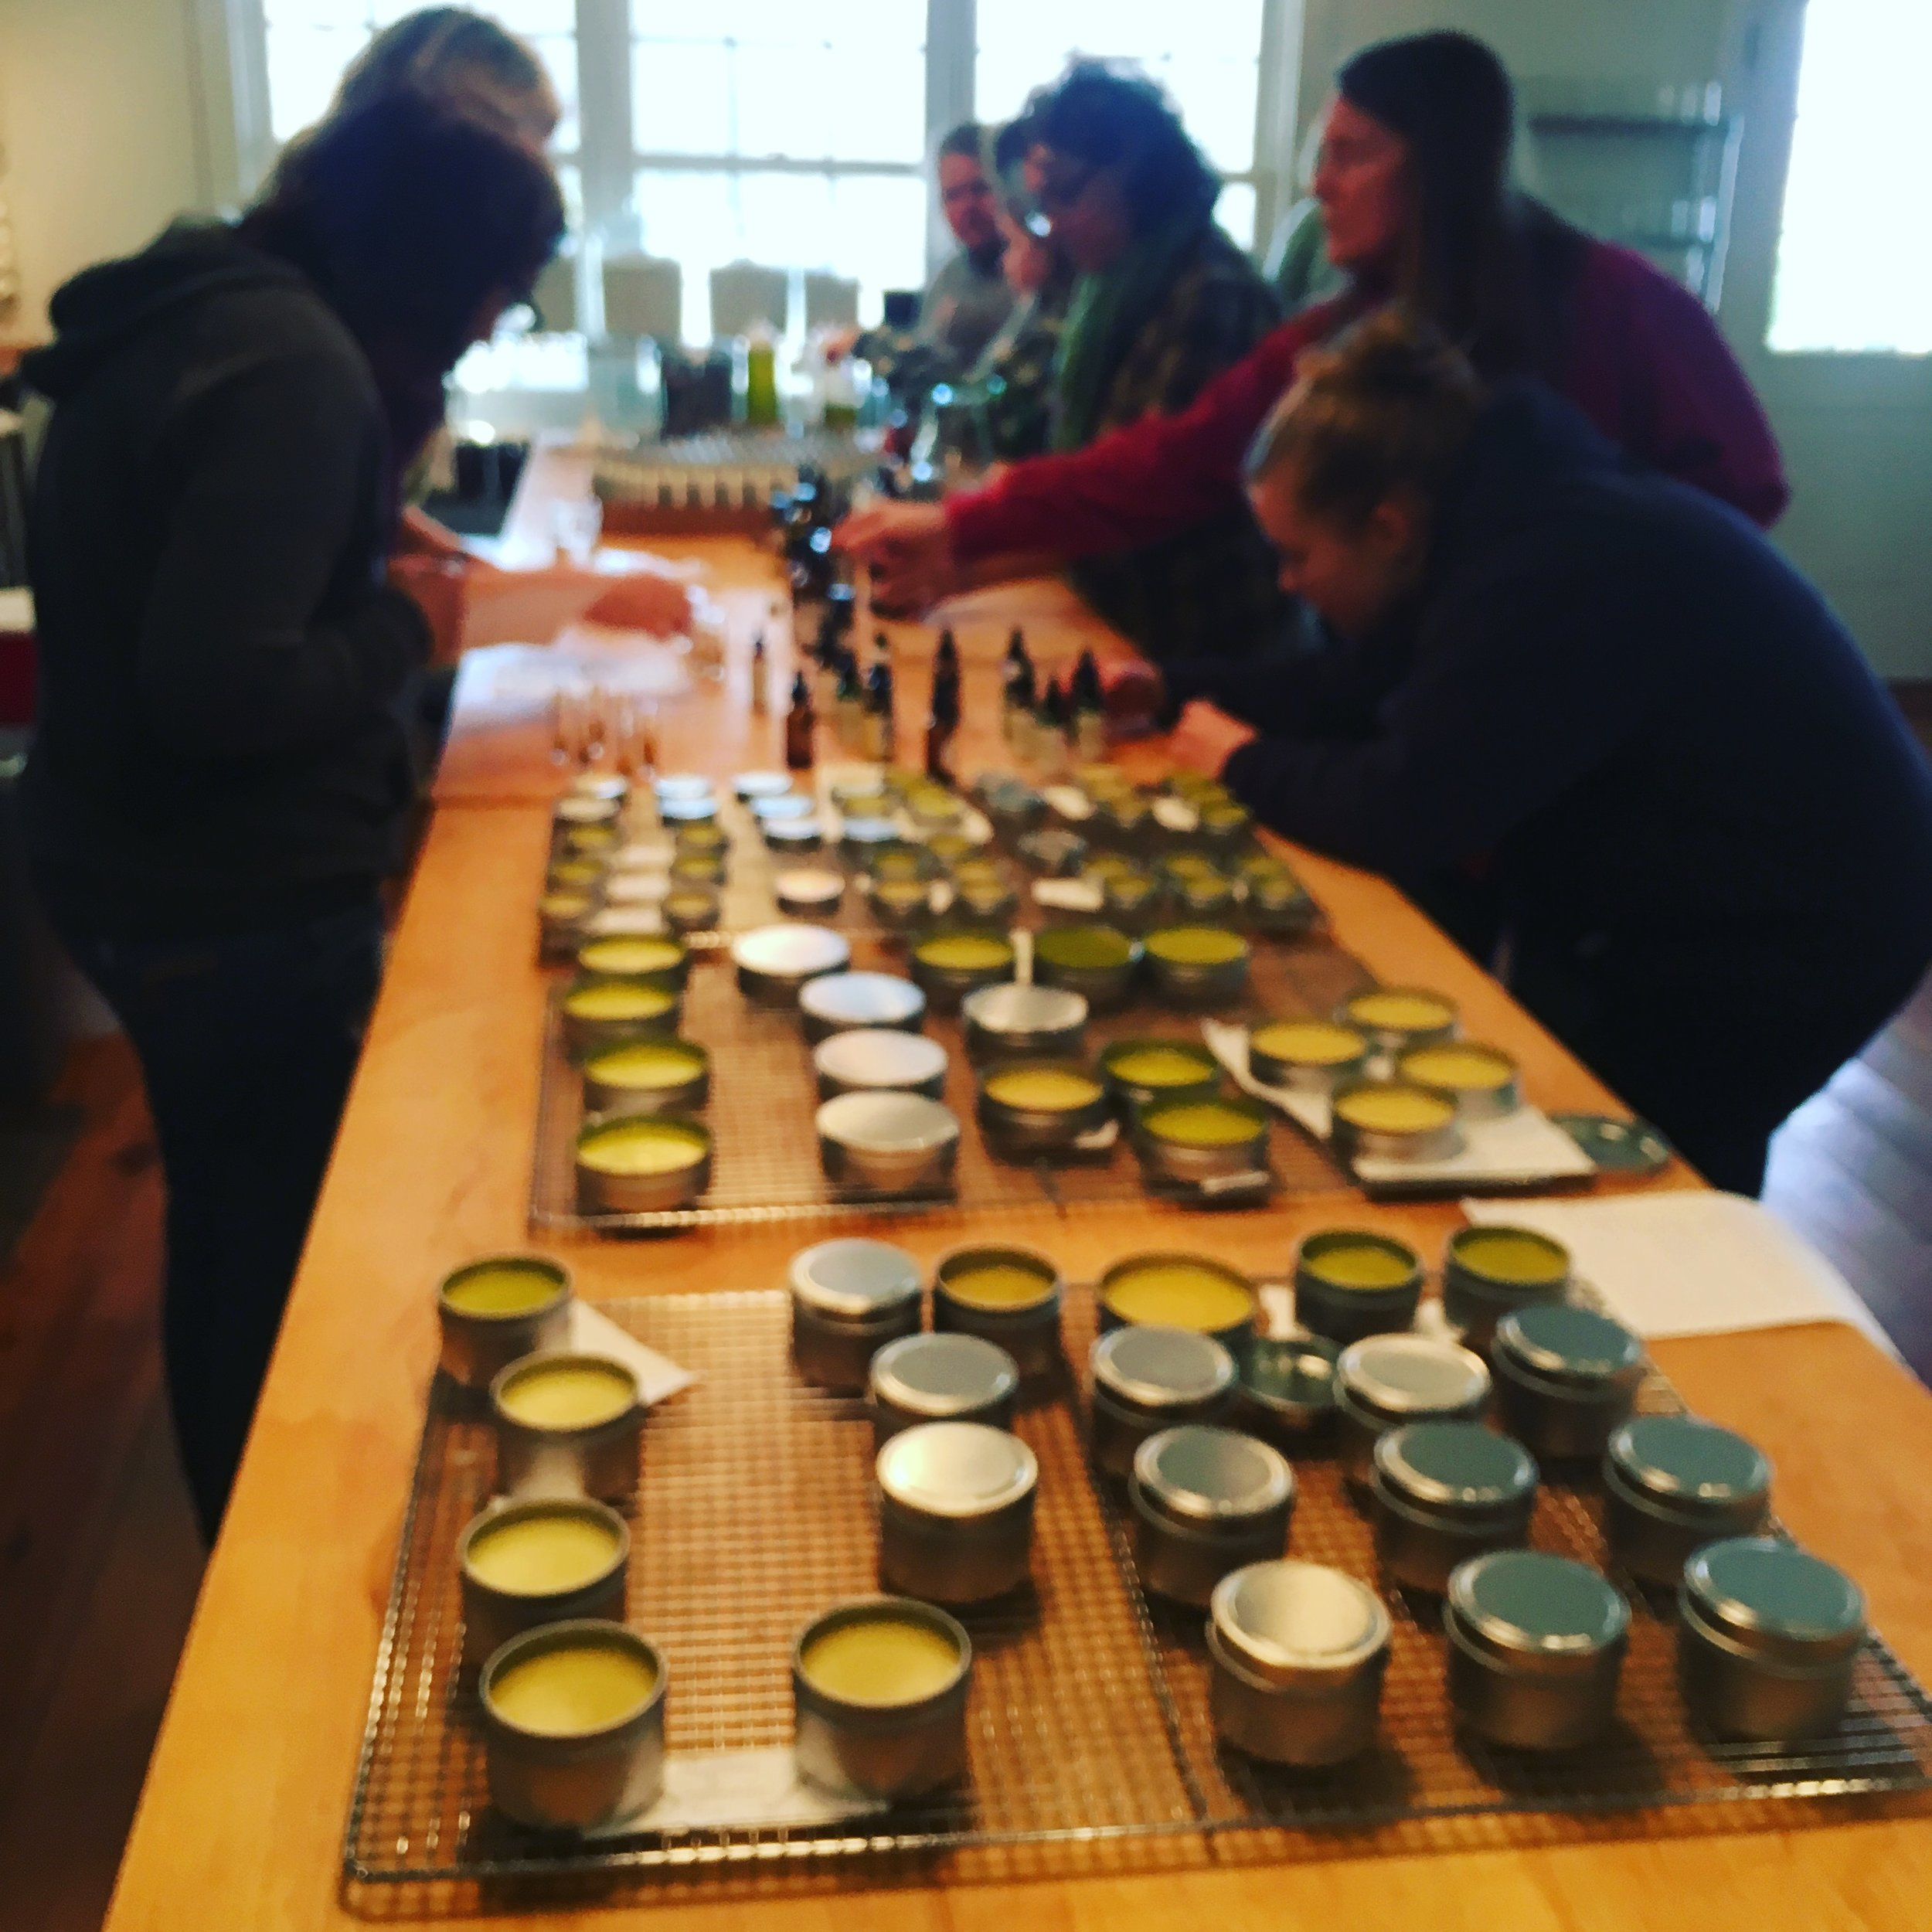 Making salves for holiday gifts